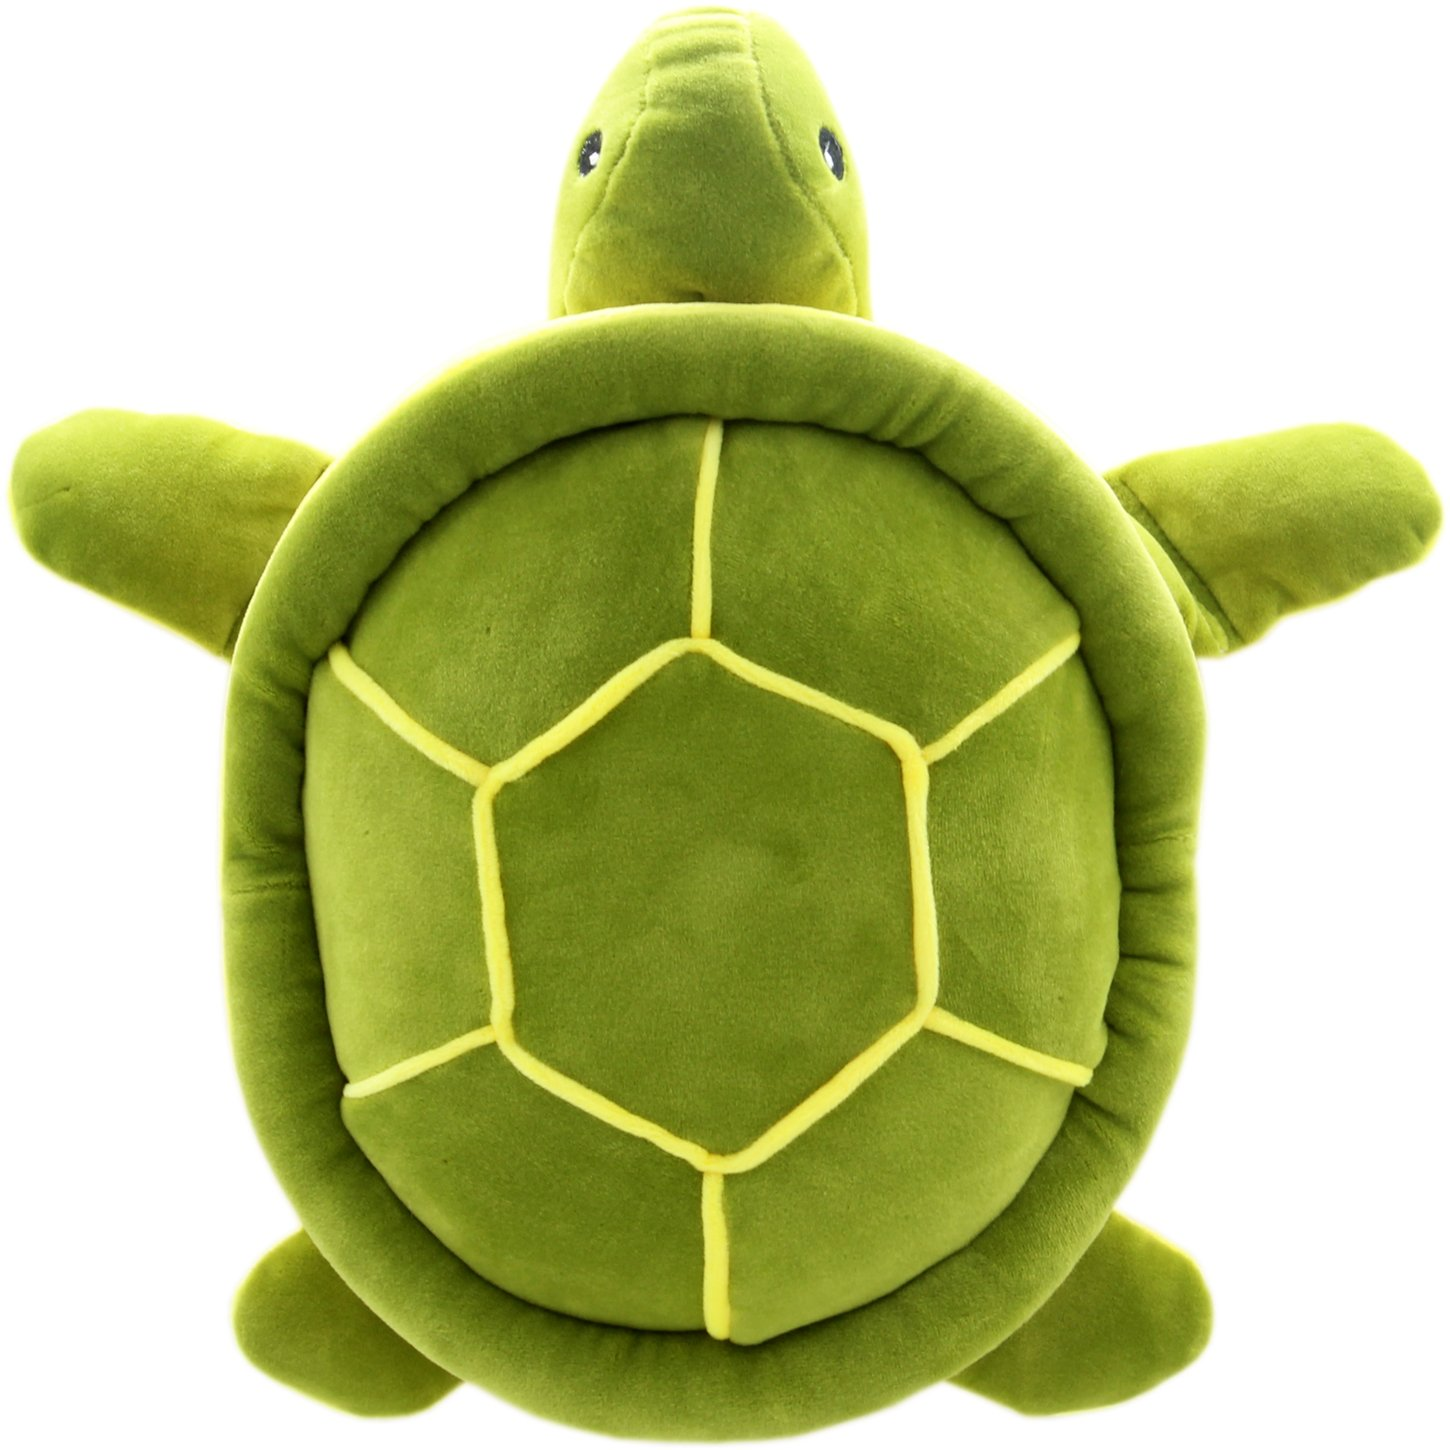 Jesonn Realistic Soft Plush Baby Pillow Stuffed Marine Animals Toy Turtle for Kids' Gifts,Green,12.6'' or 32CM,1PC by JESONN